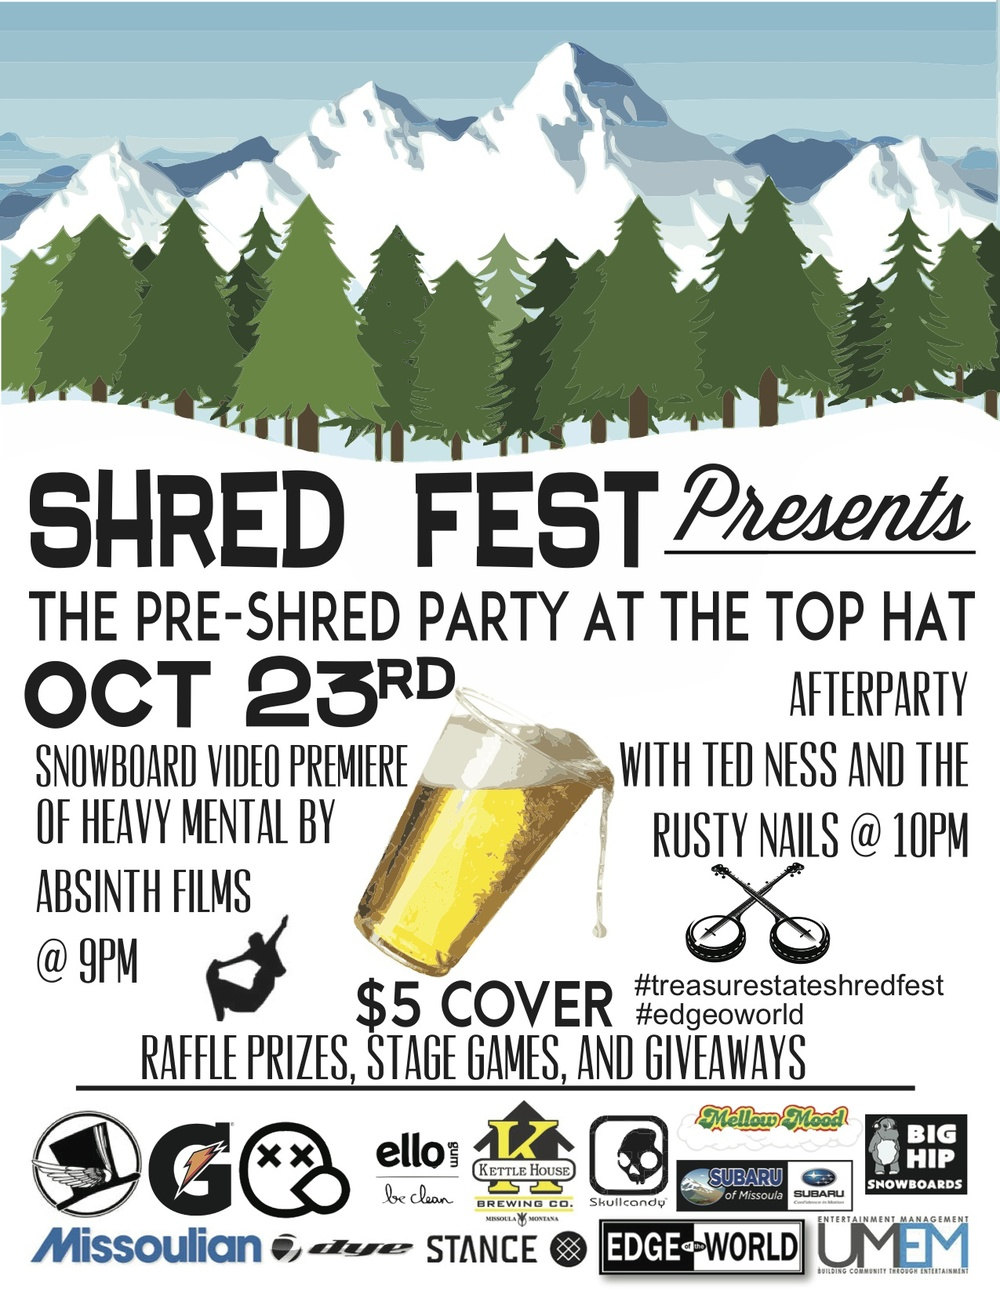 Shred Fest -  Missoula, Montana  -  Oct 23  #edgeoworld